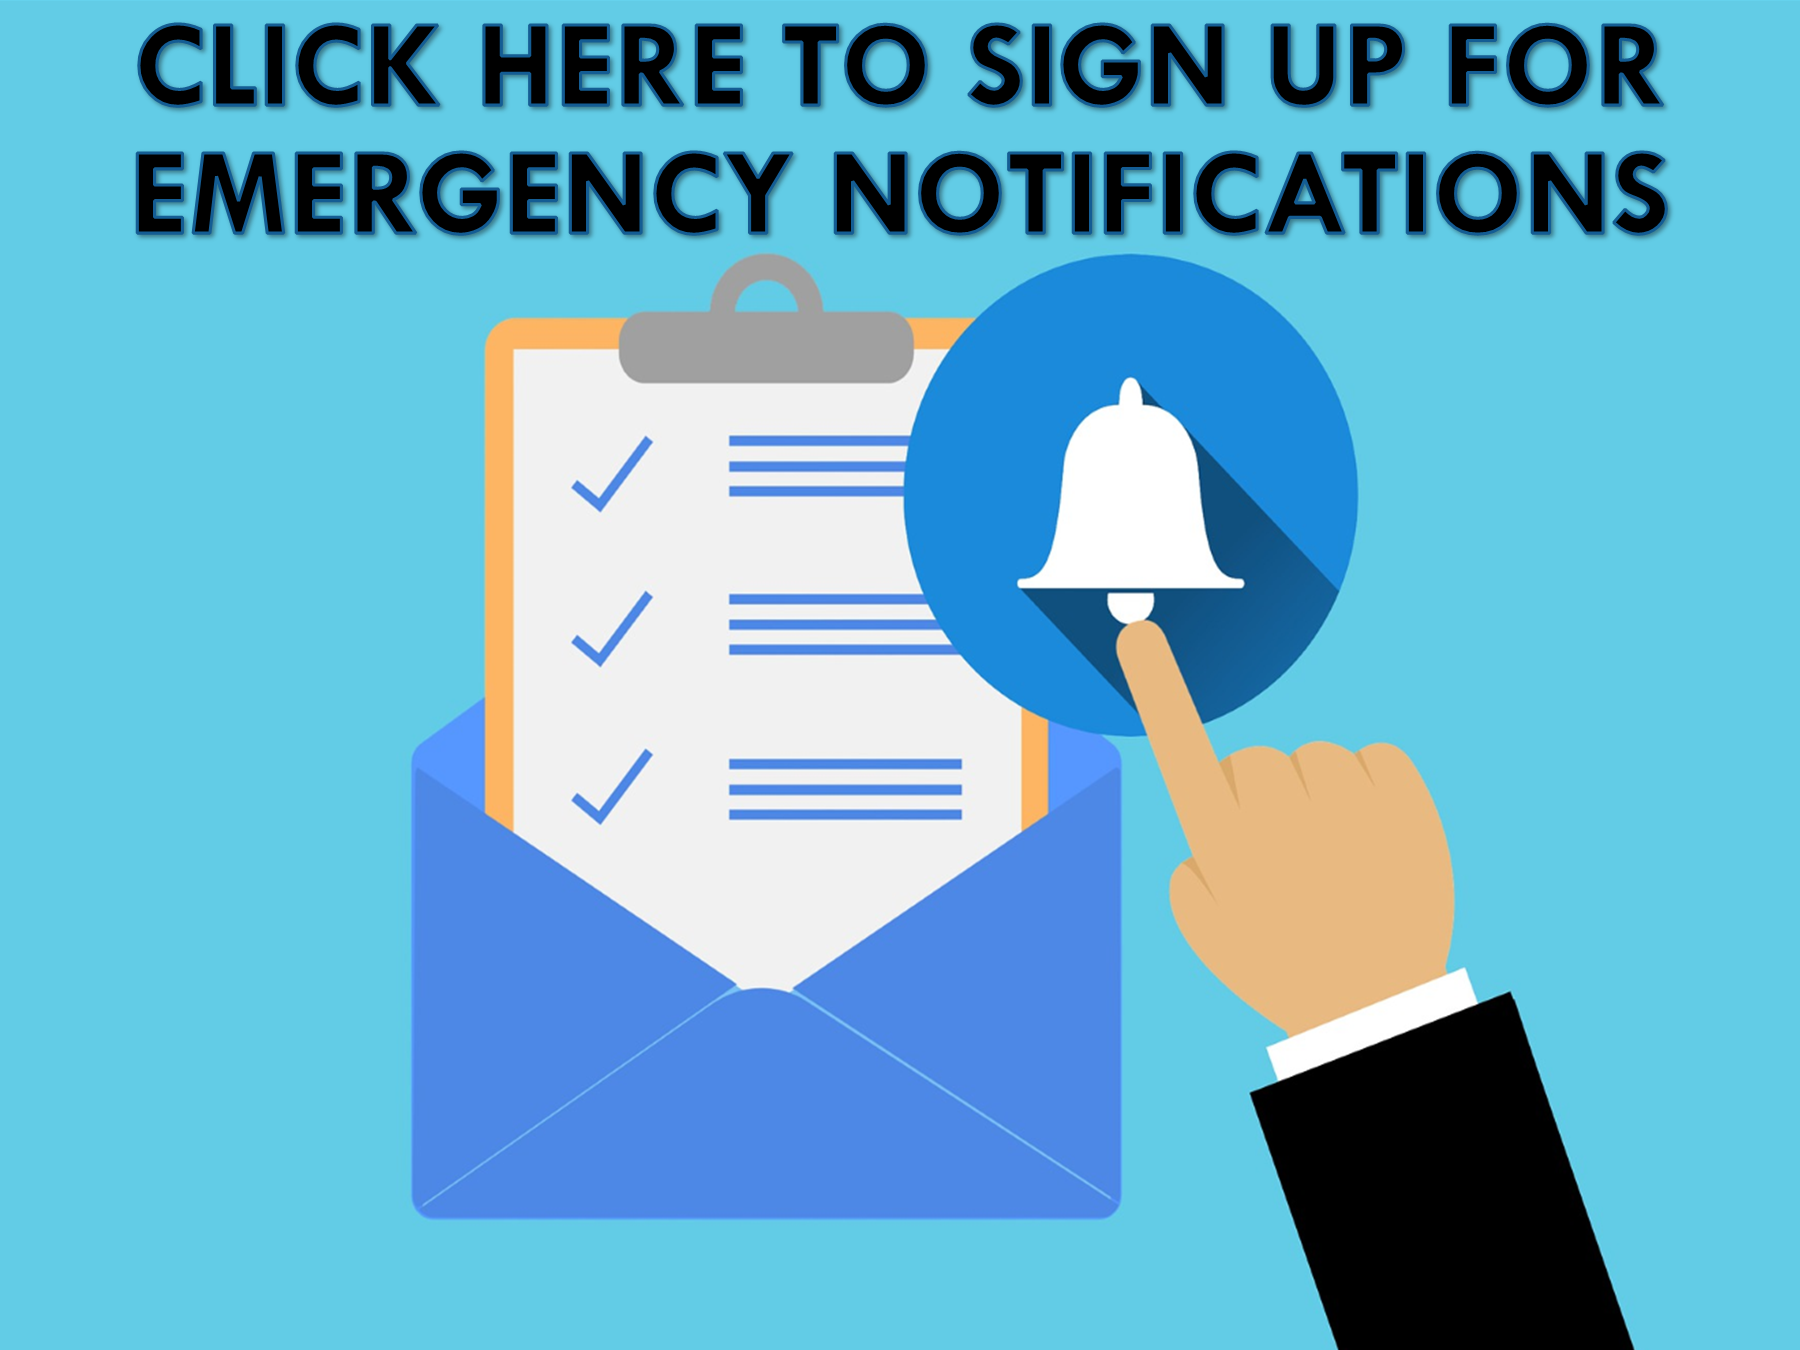 Emergency Notifications Opens in new window